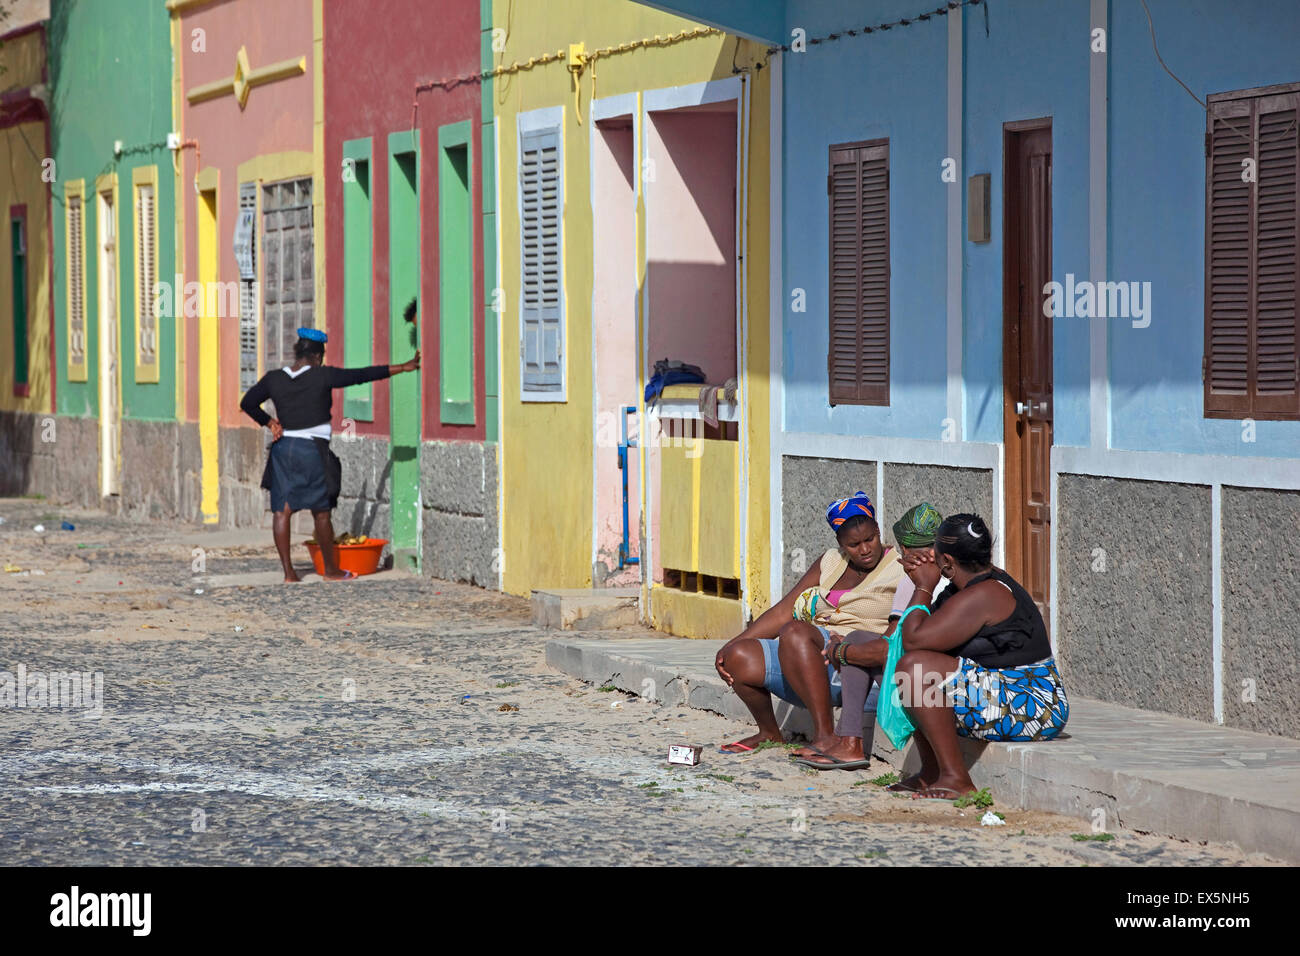 Creole women talking on doorstep in street in the village Sal Rei on the island Boa Vista, Cape Verde / Cabo Verde, - Stock Image